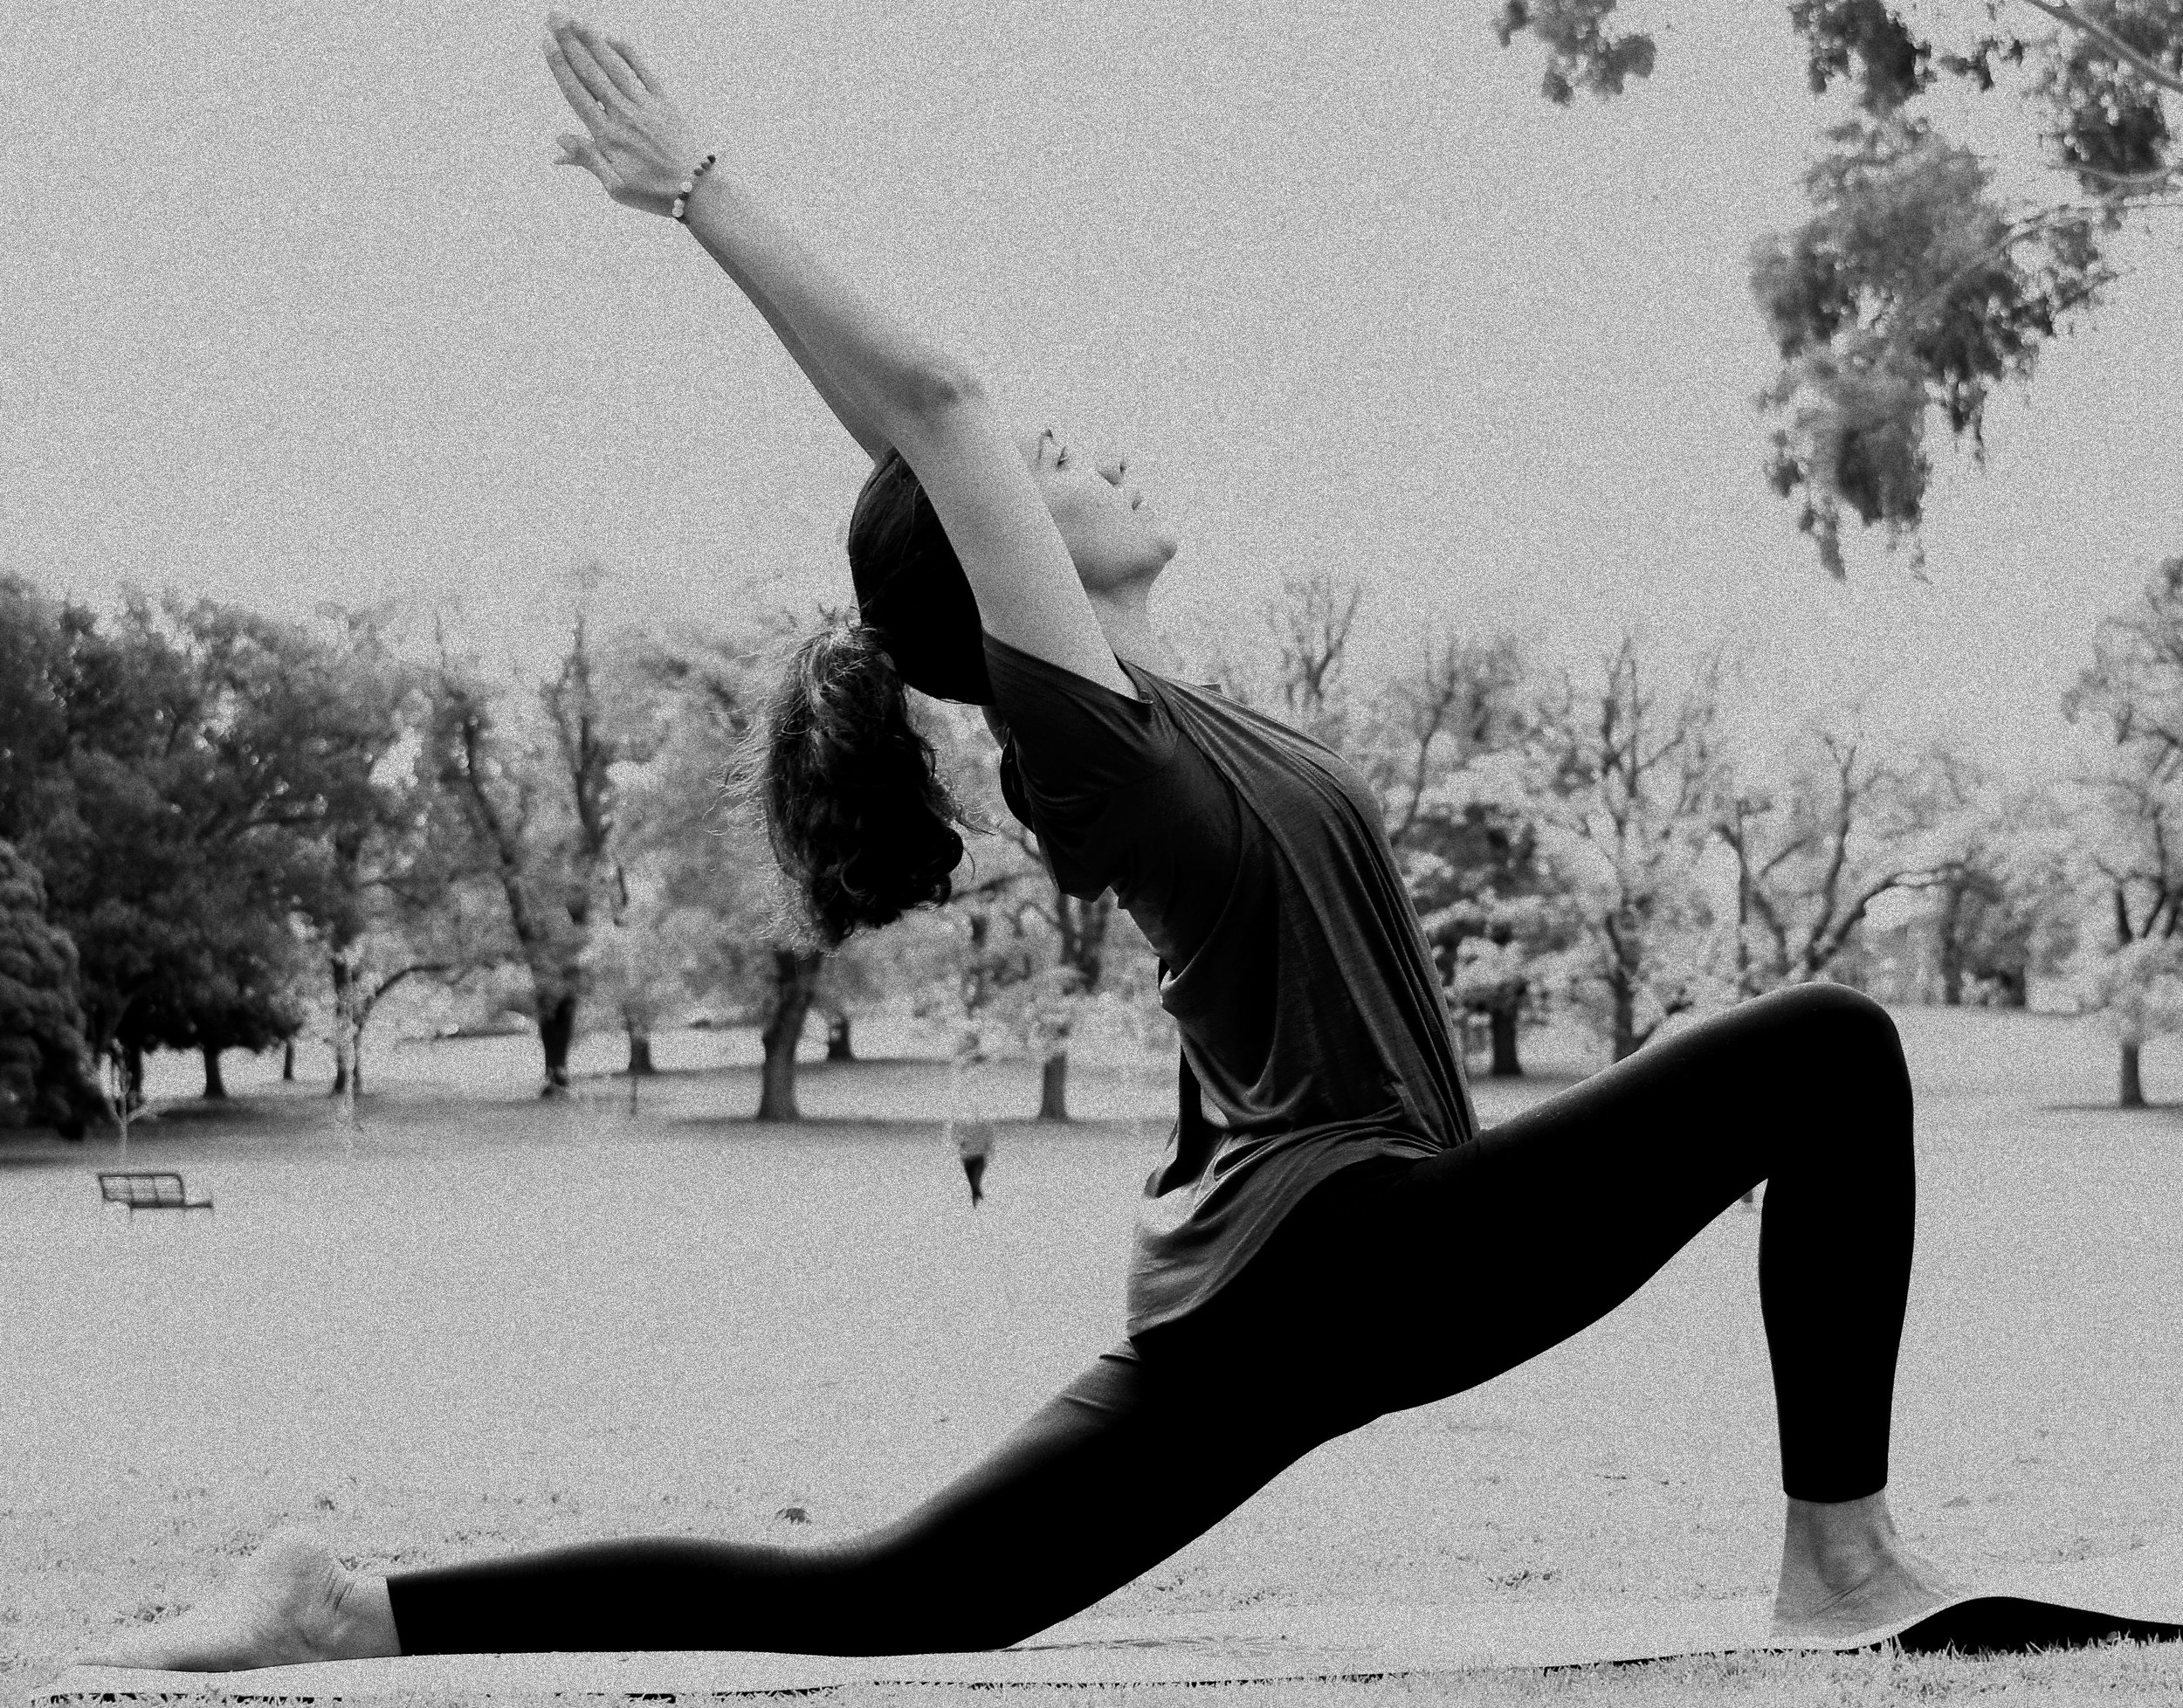 Our yoga classes are perfect for both beginner and advanced students, and offer a balance for the physical and mental stresses of our modern day lives. -